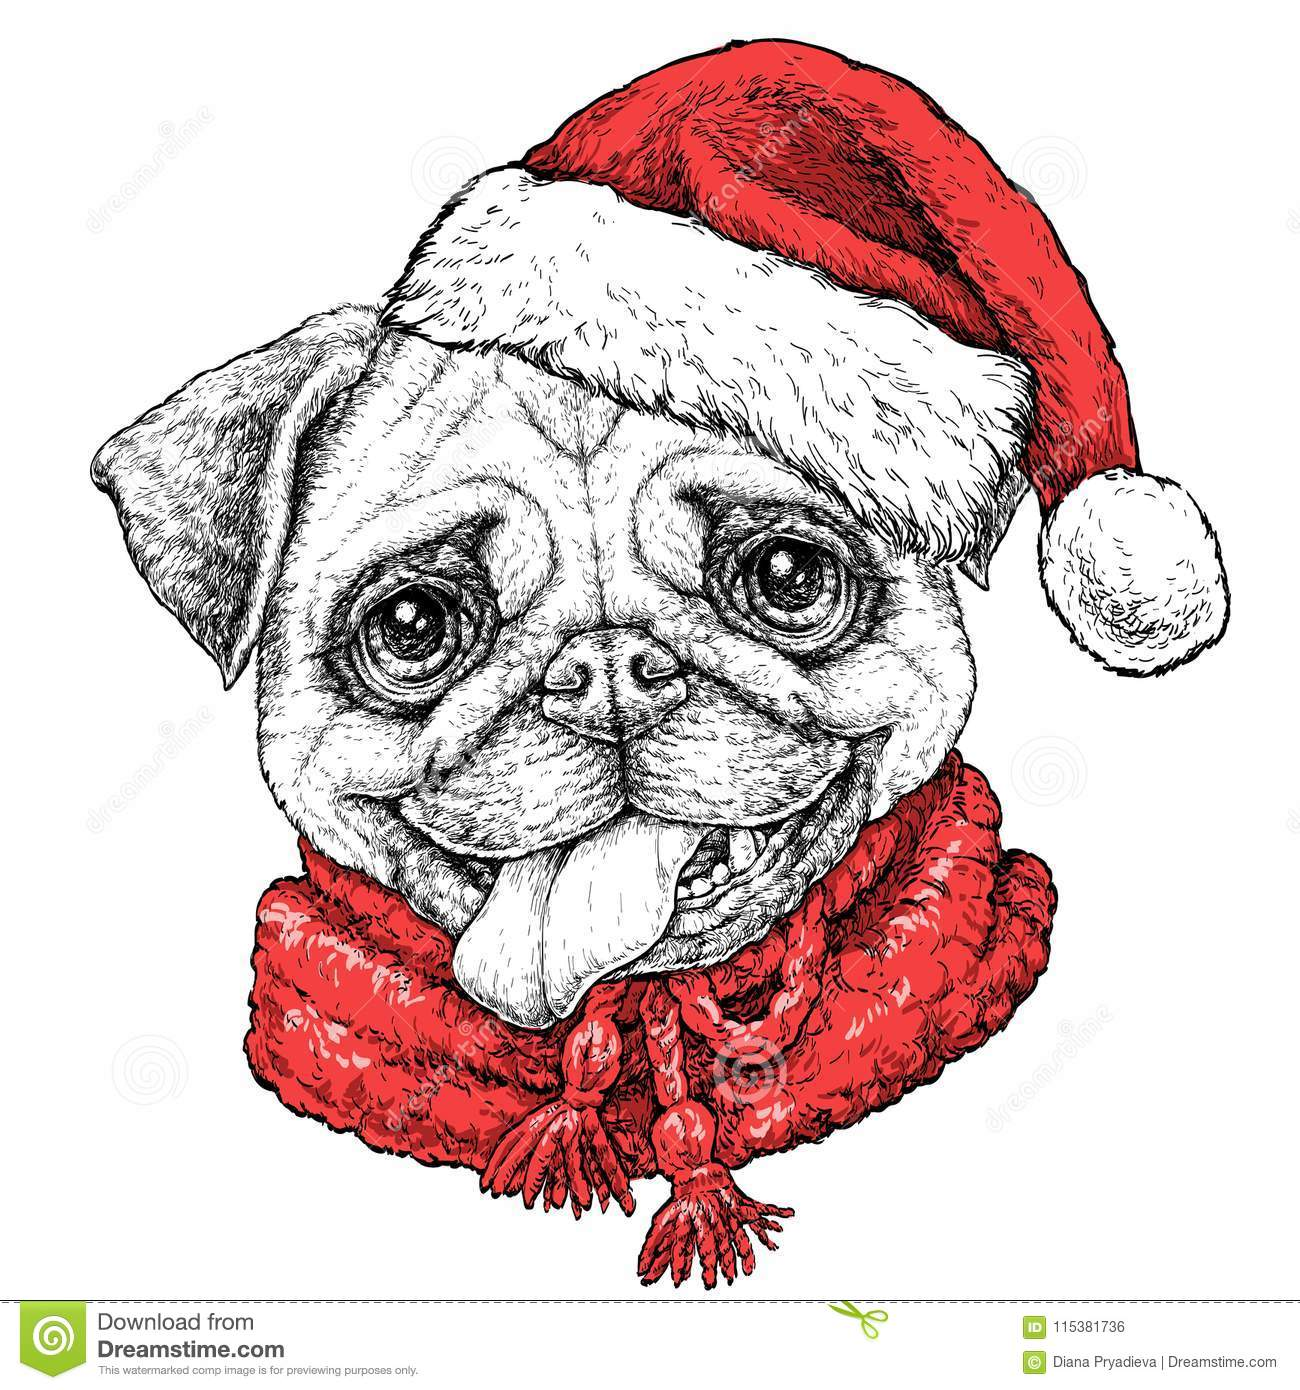 Christmas Card With Puppy Pug Portrait In Red Santa S Hat And Scarf Vector Illustration Stock Vector Illustration Of Drawing Playful 115381736